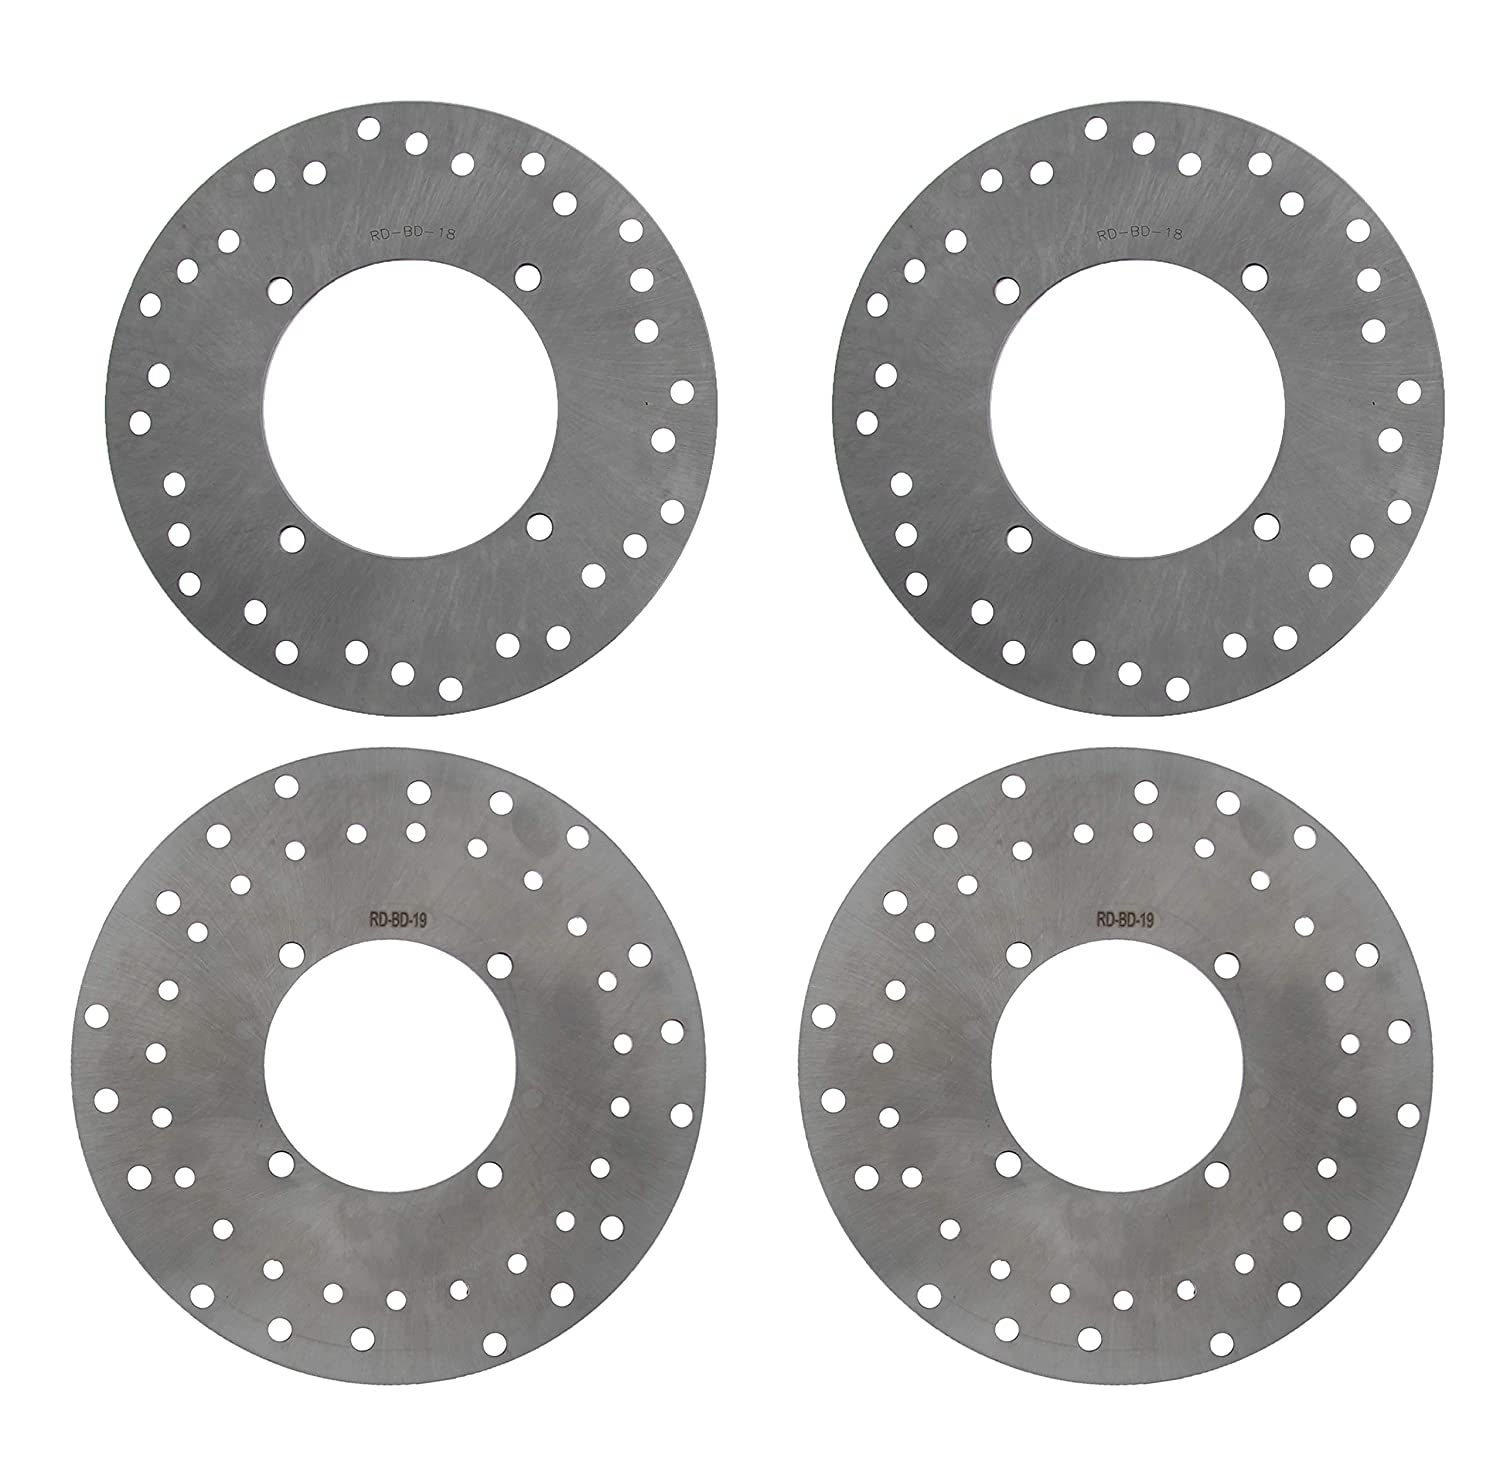 Brake Rotor Disc for Polaris Sportsman 500 4x4 EFI 2007 Rear by Race-Driven